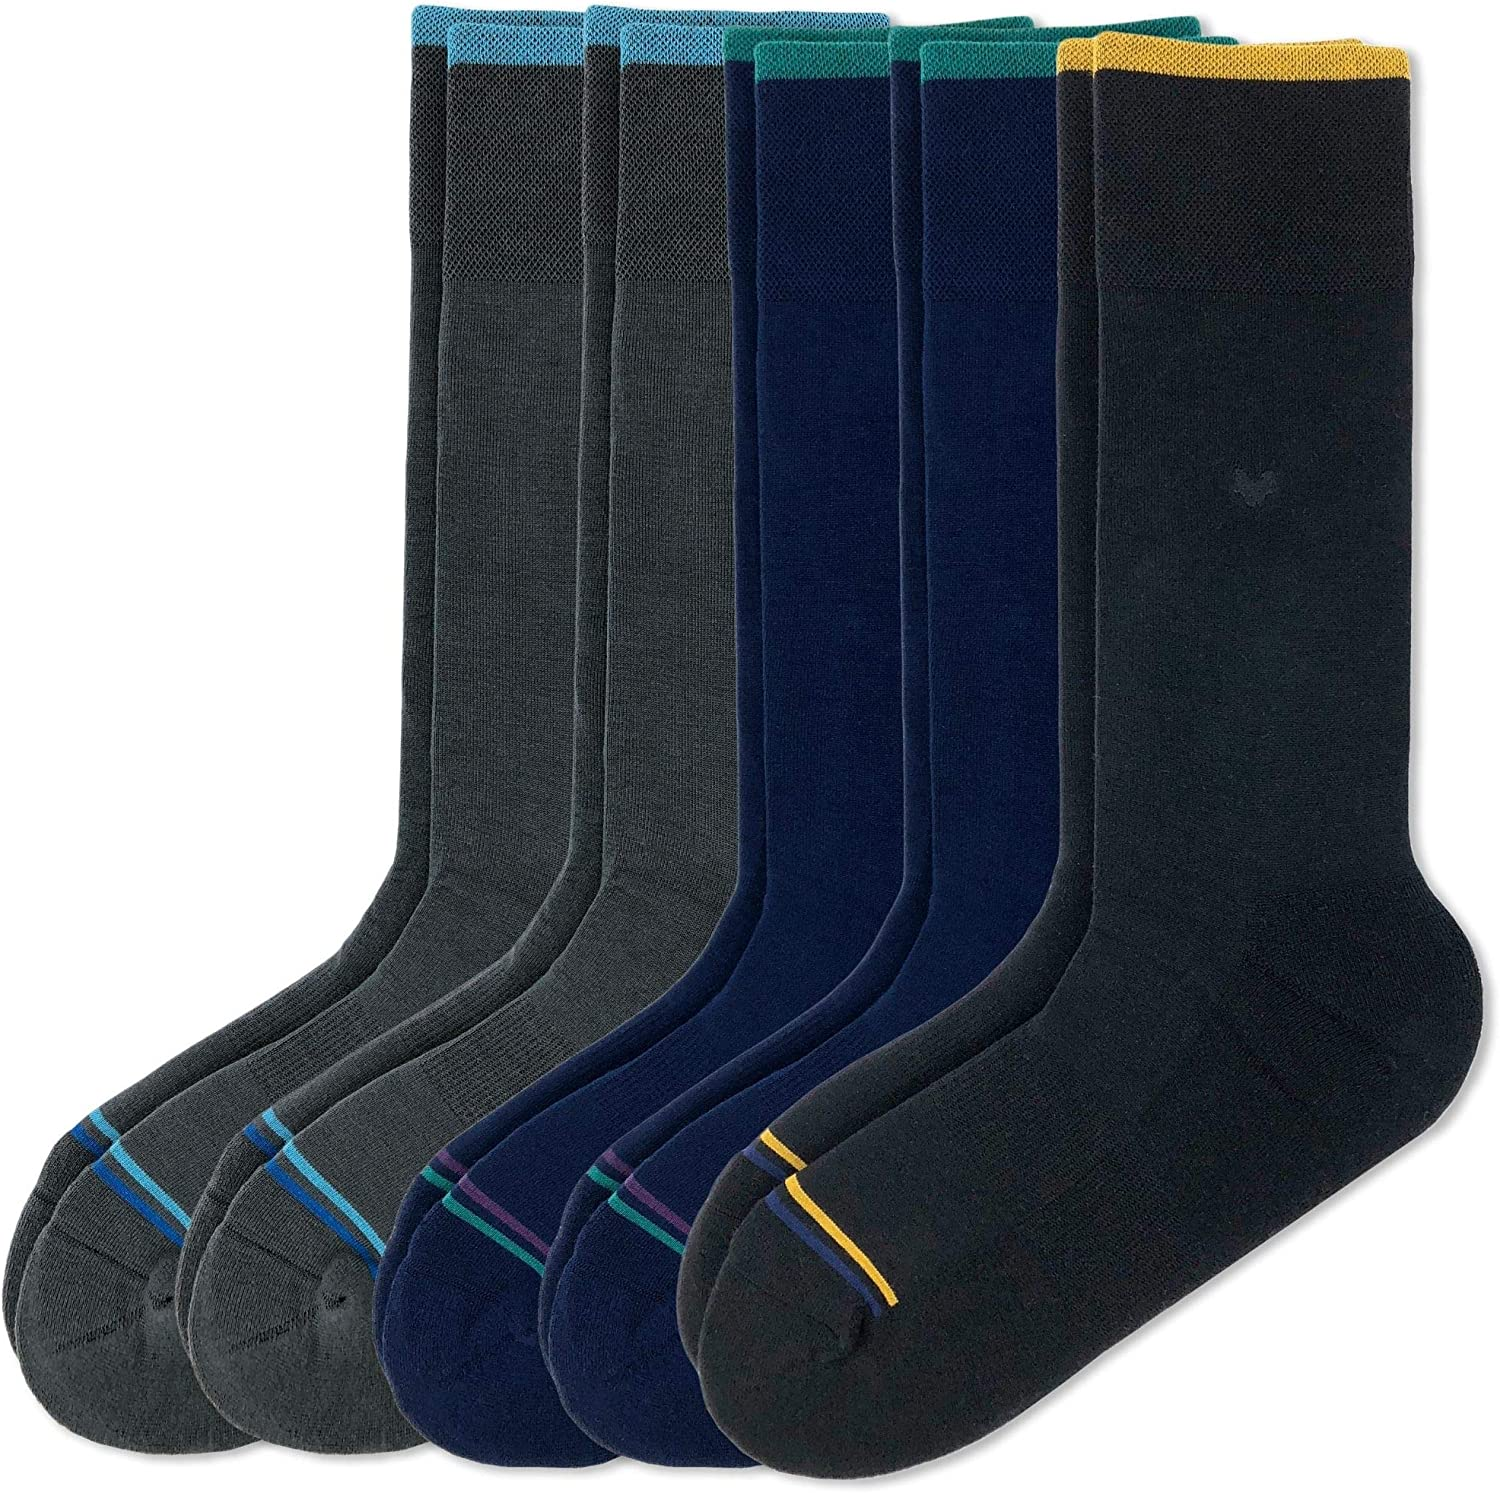 Special price for a limited Special price time High Performance Dress Socks 5-Pack